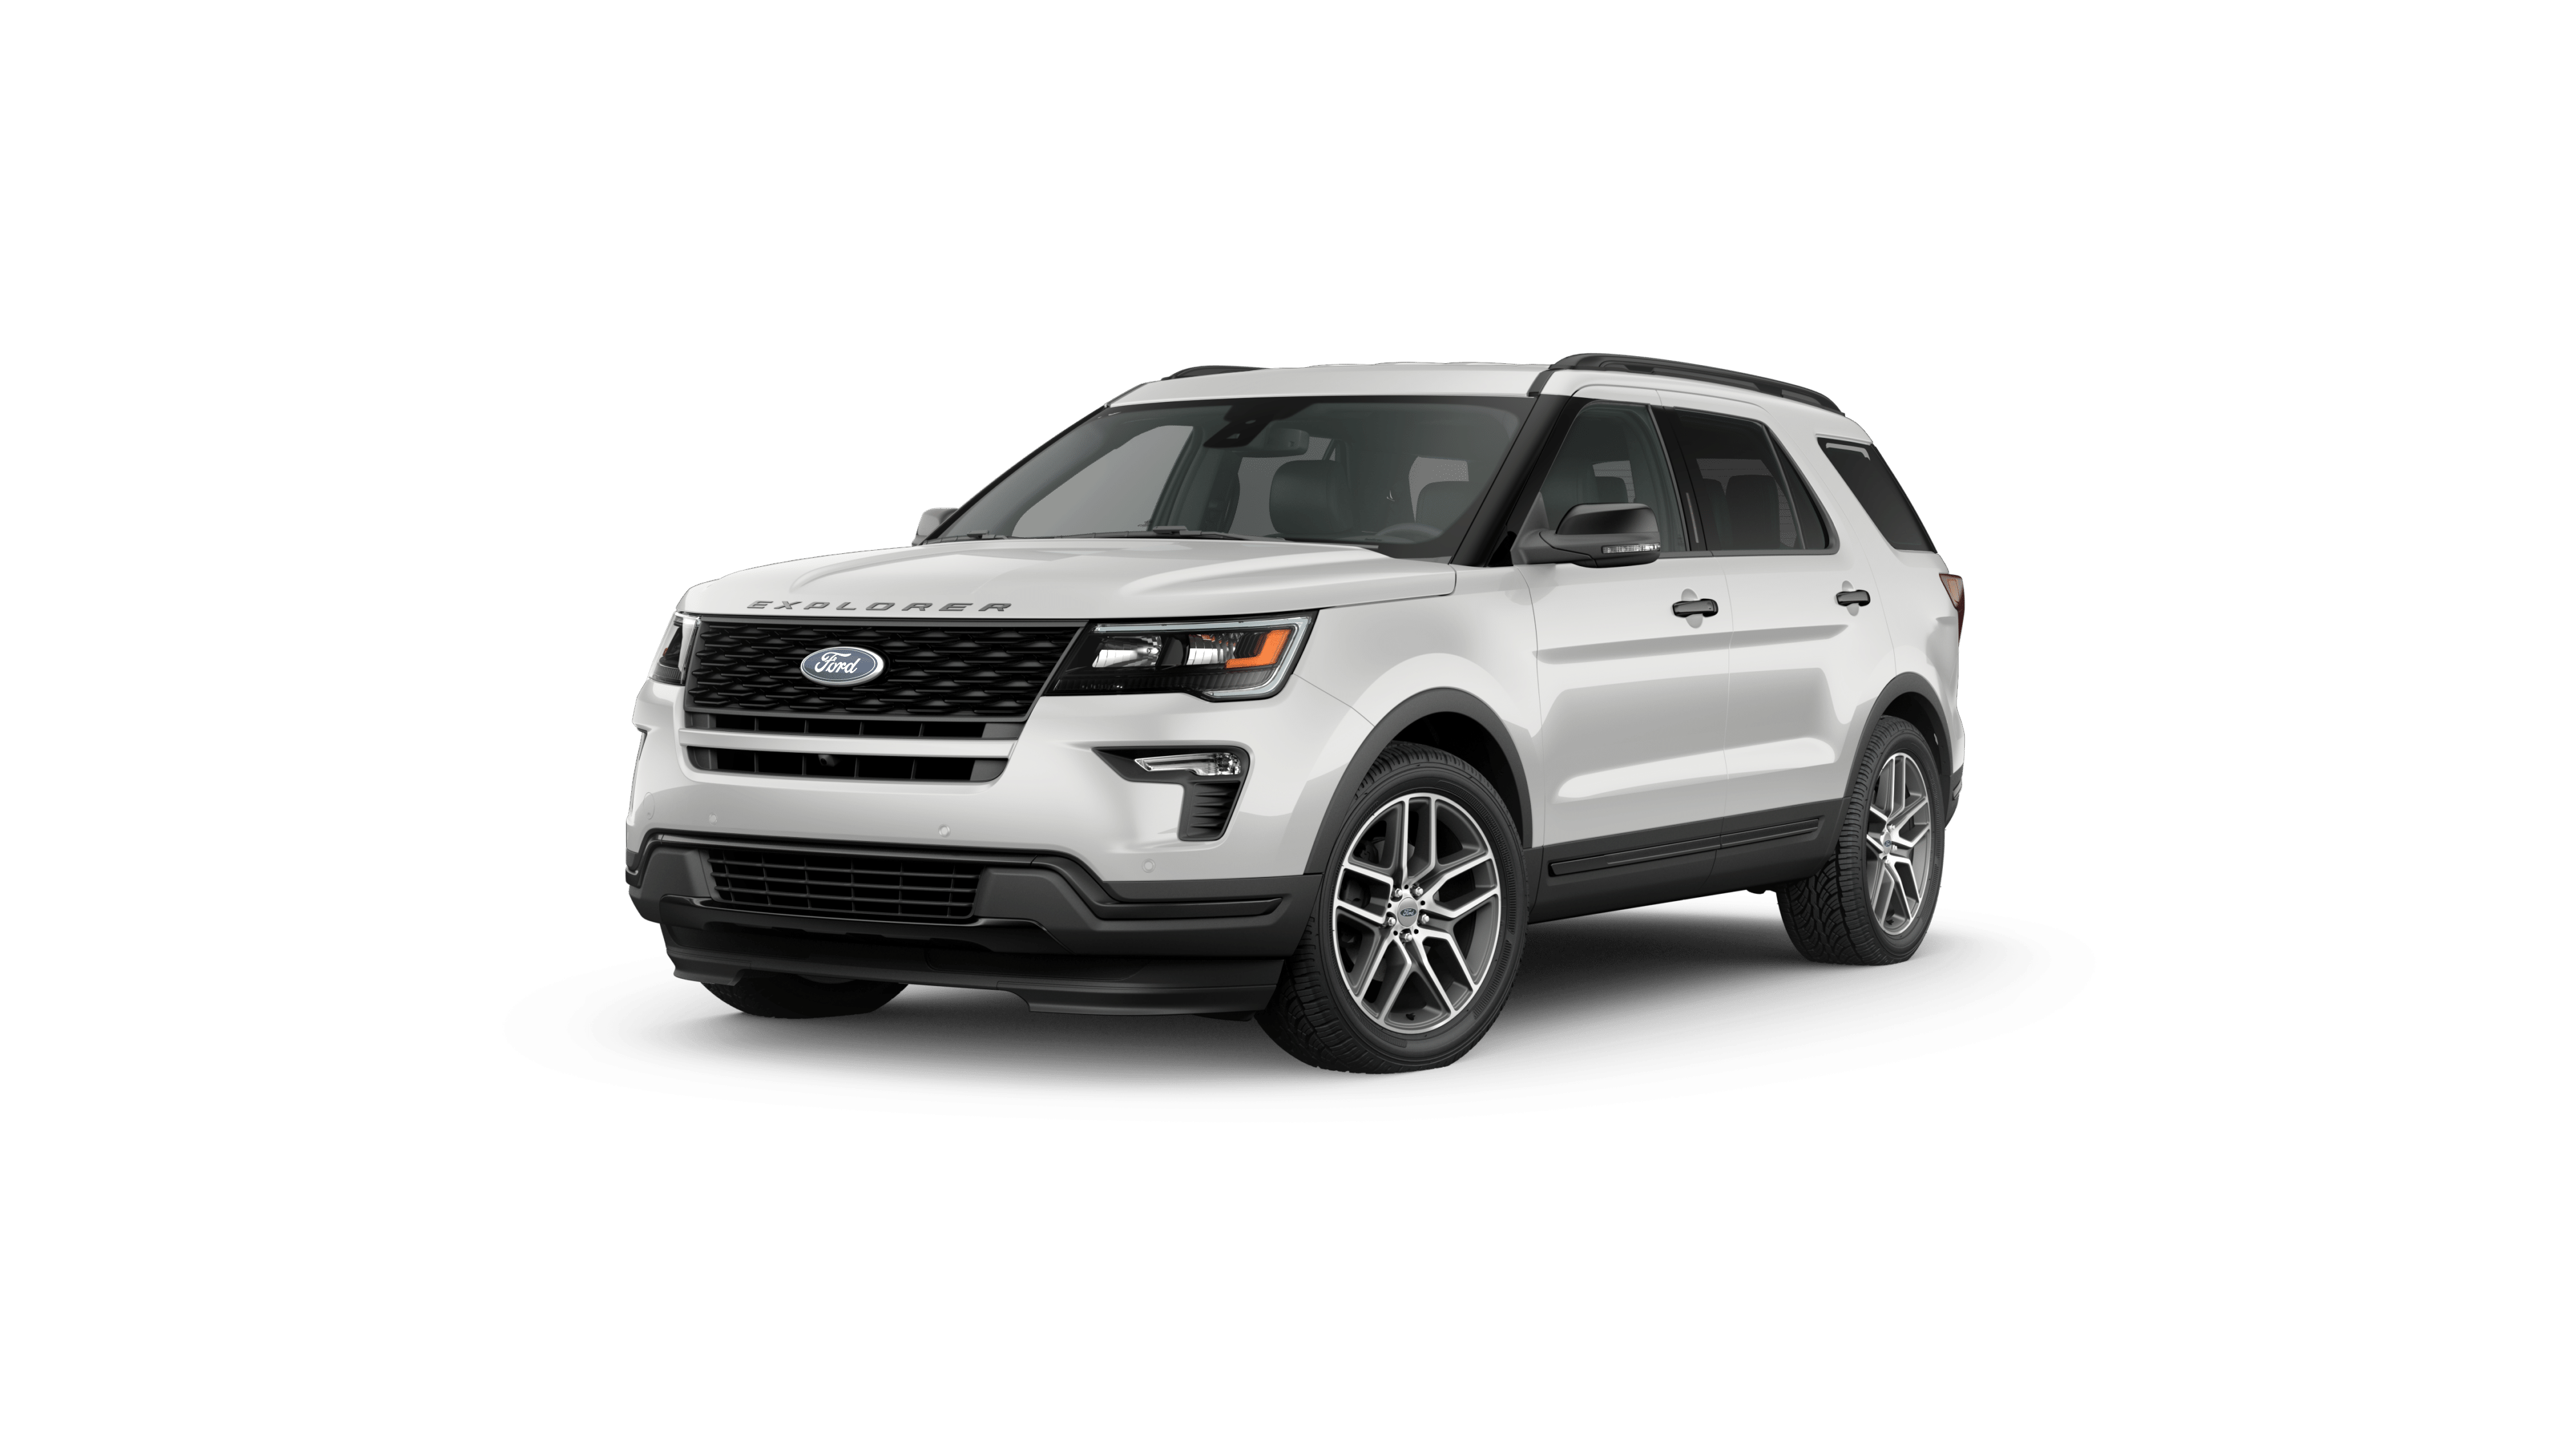 2018 Ford Explorer Vehicle Photo in Quakertown, PA 18951-1403